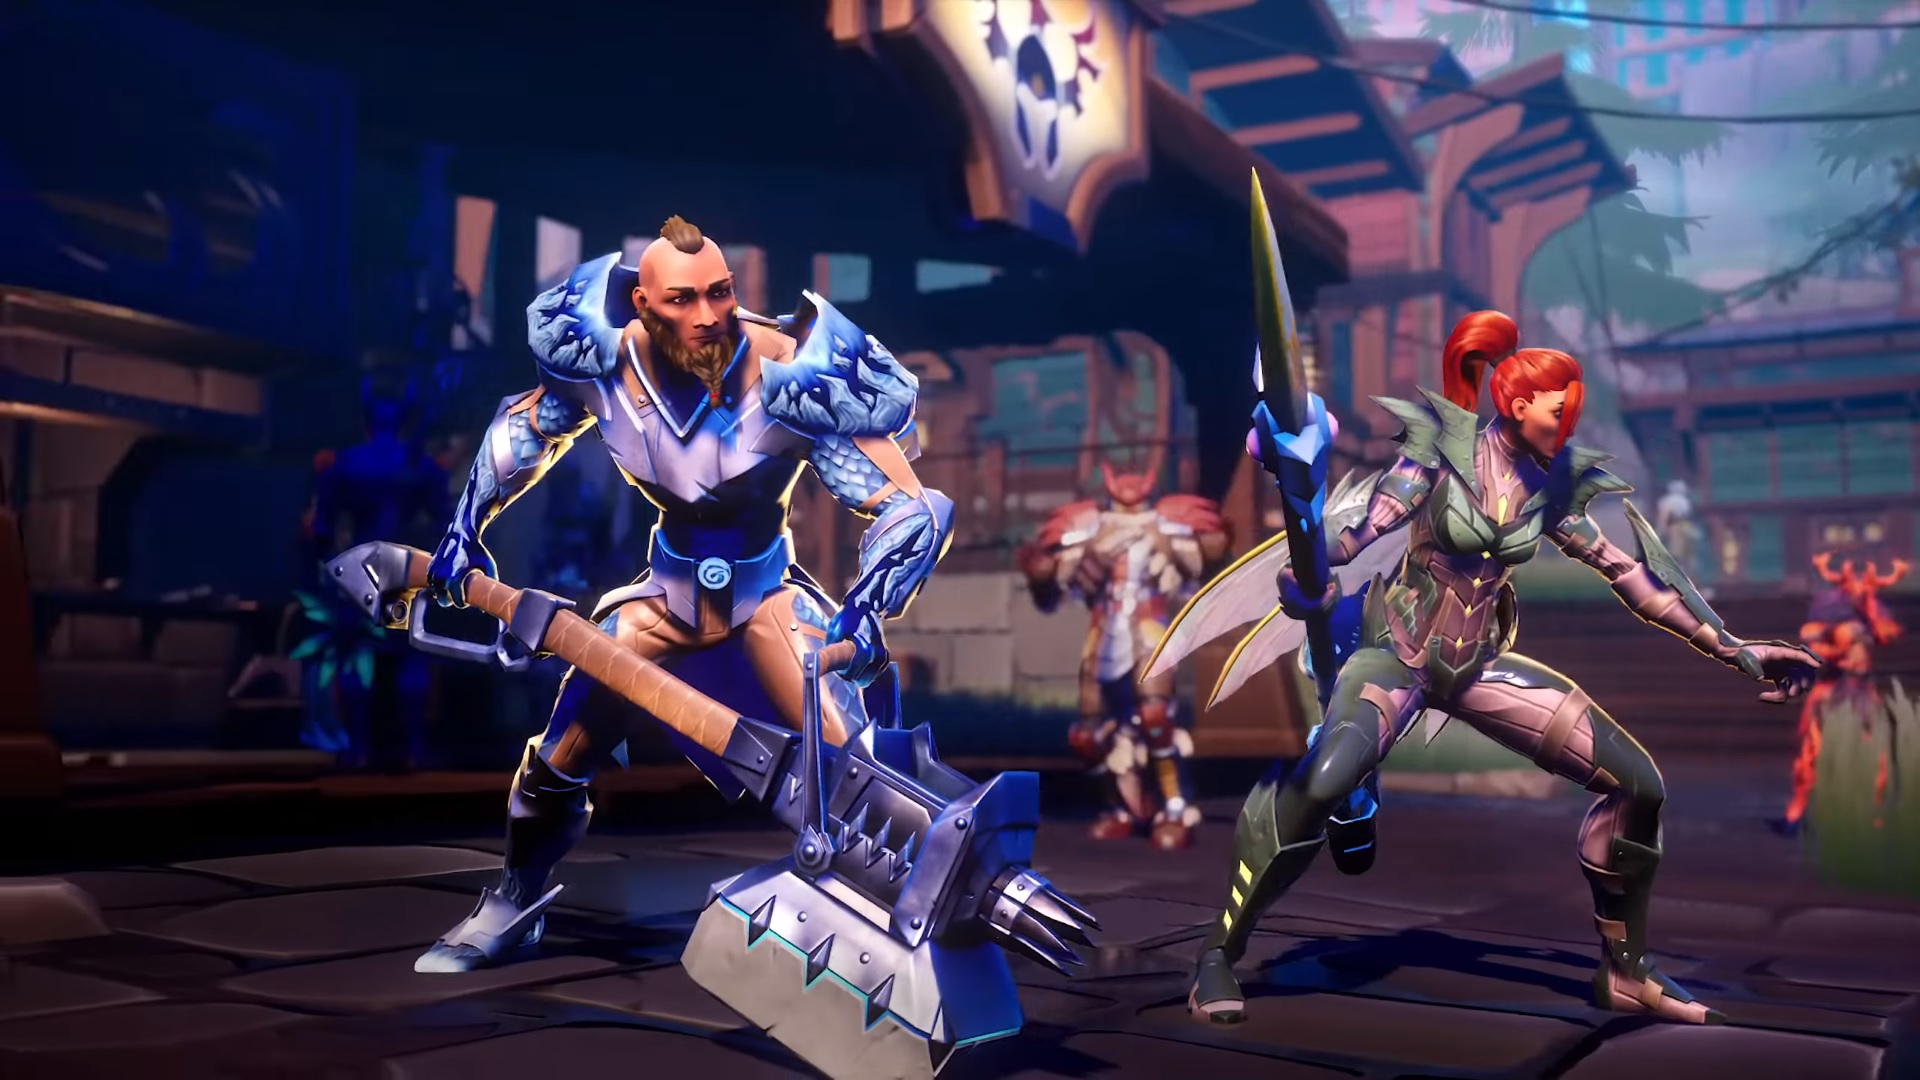 Dauntless Servers Are Getting Crushed as the Game Gets Cross